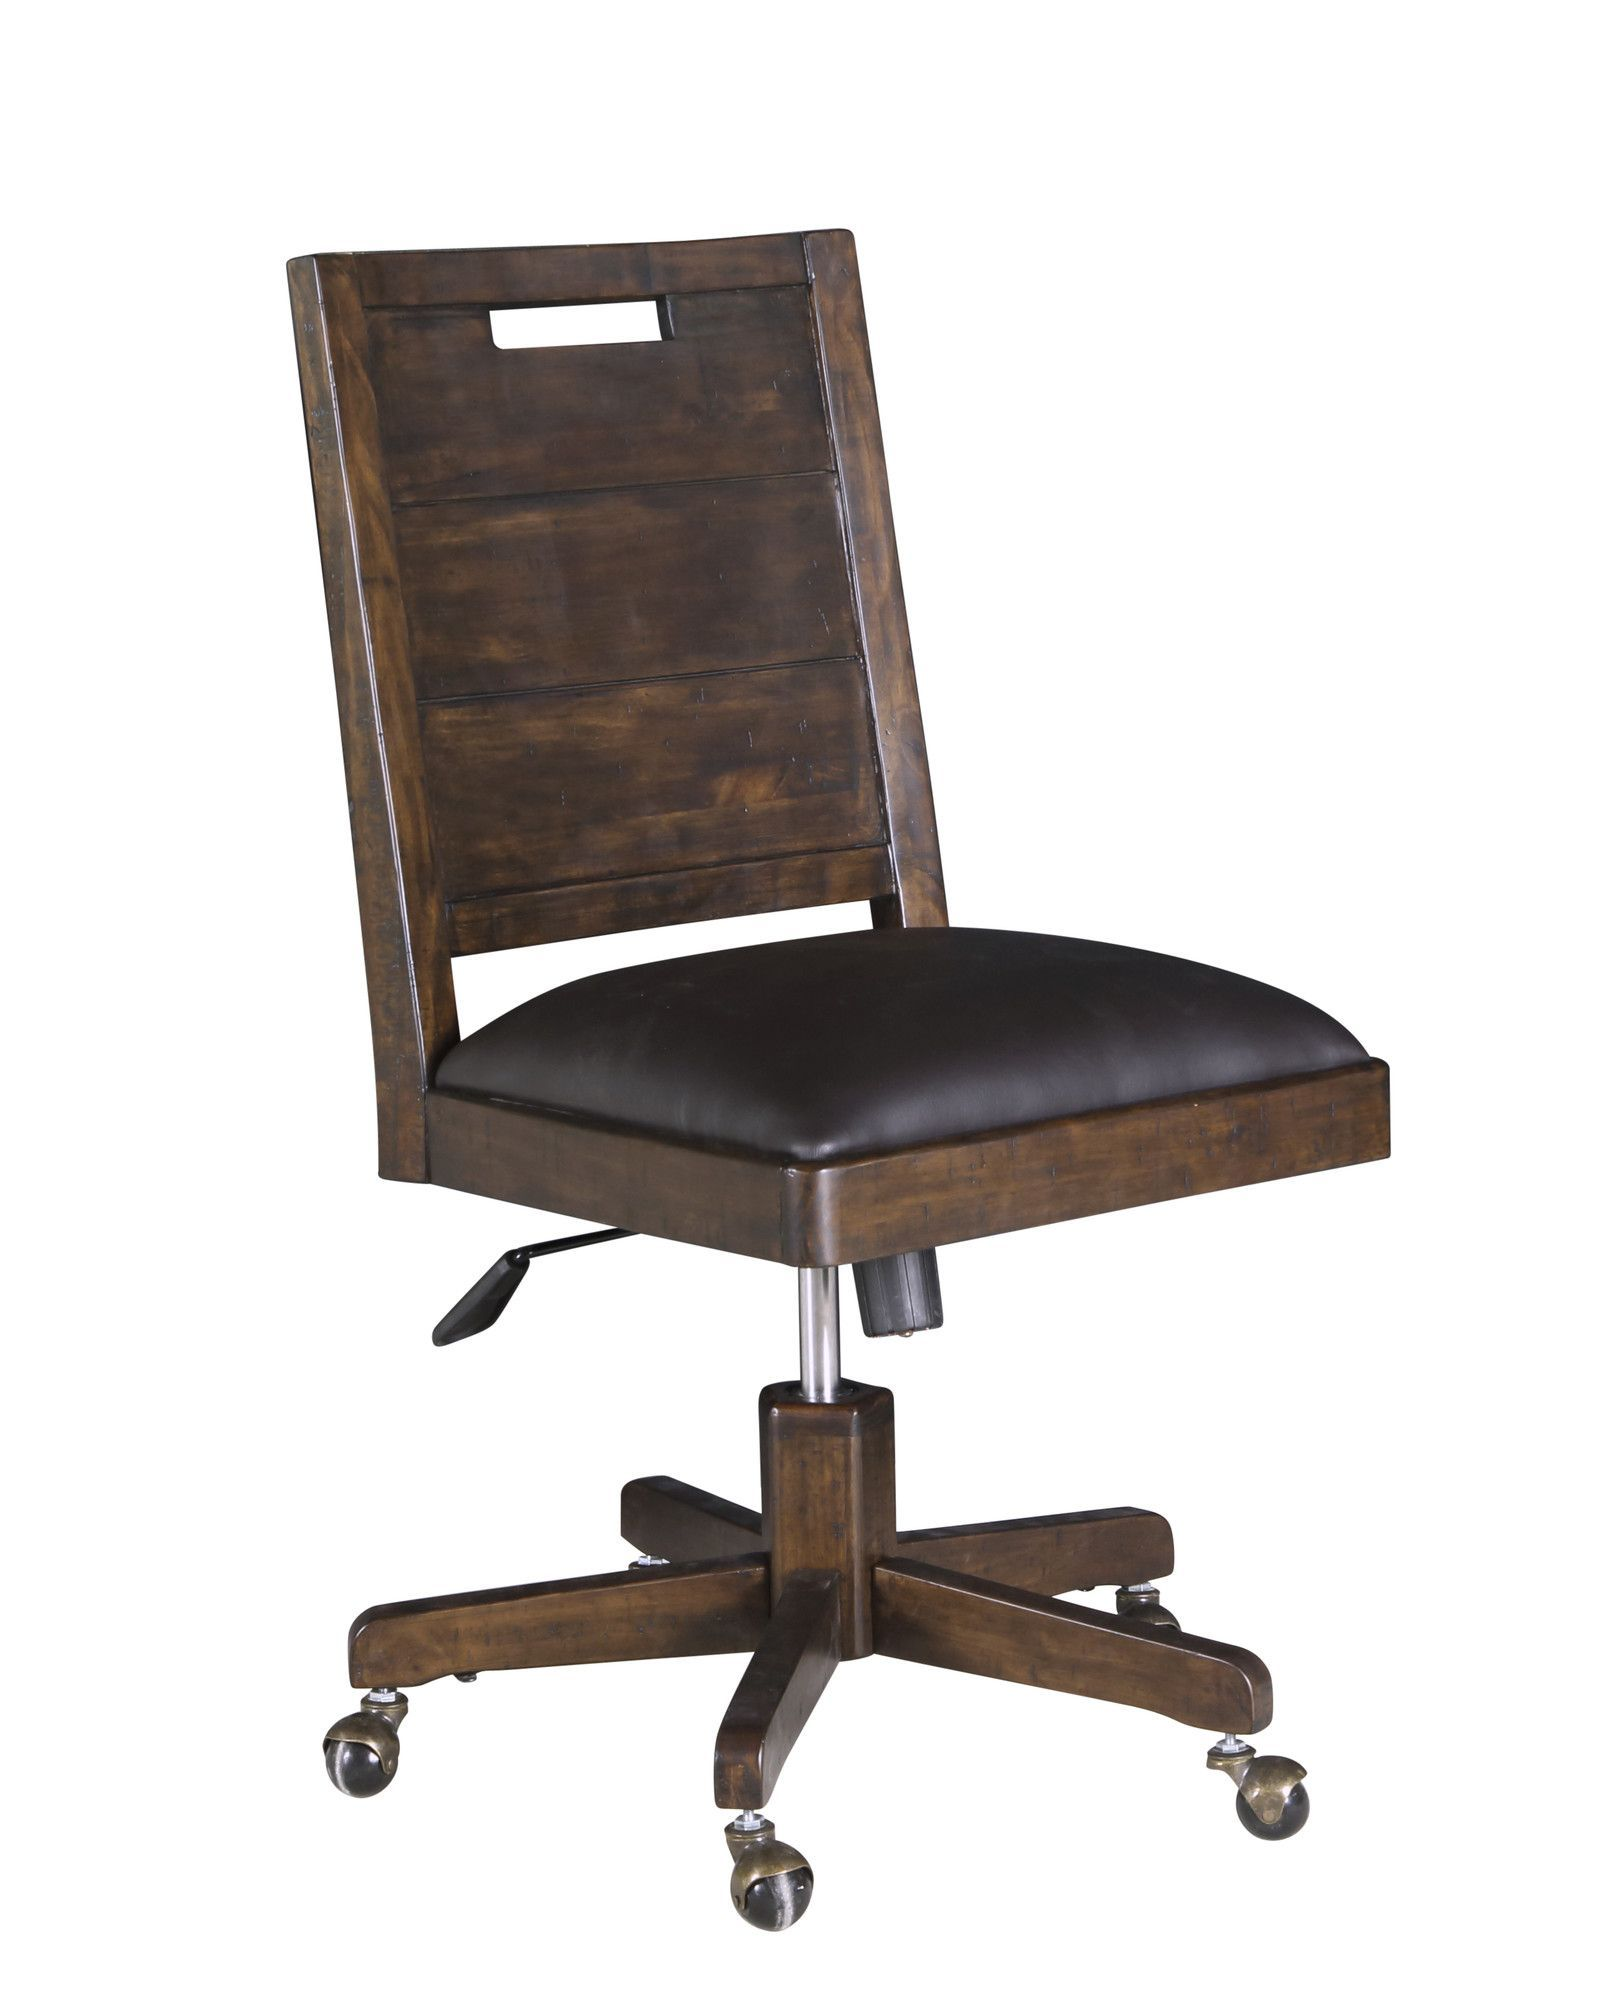 Pine Hill Swivel Office Chair